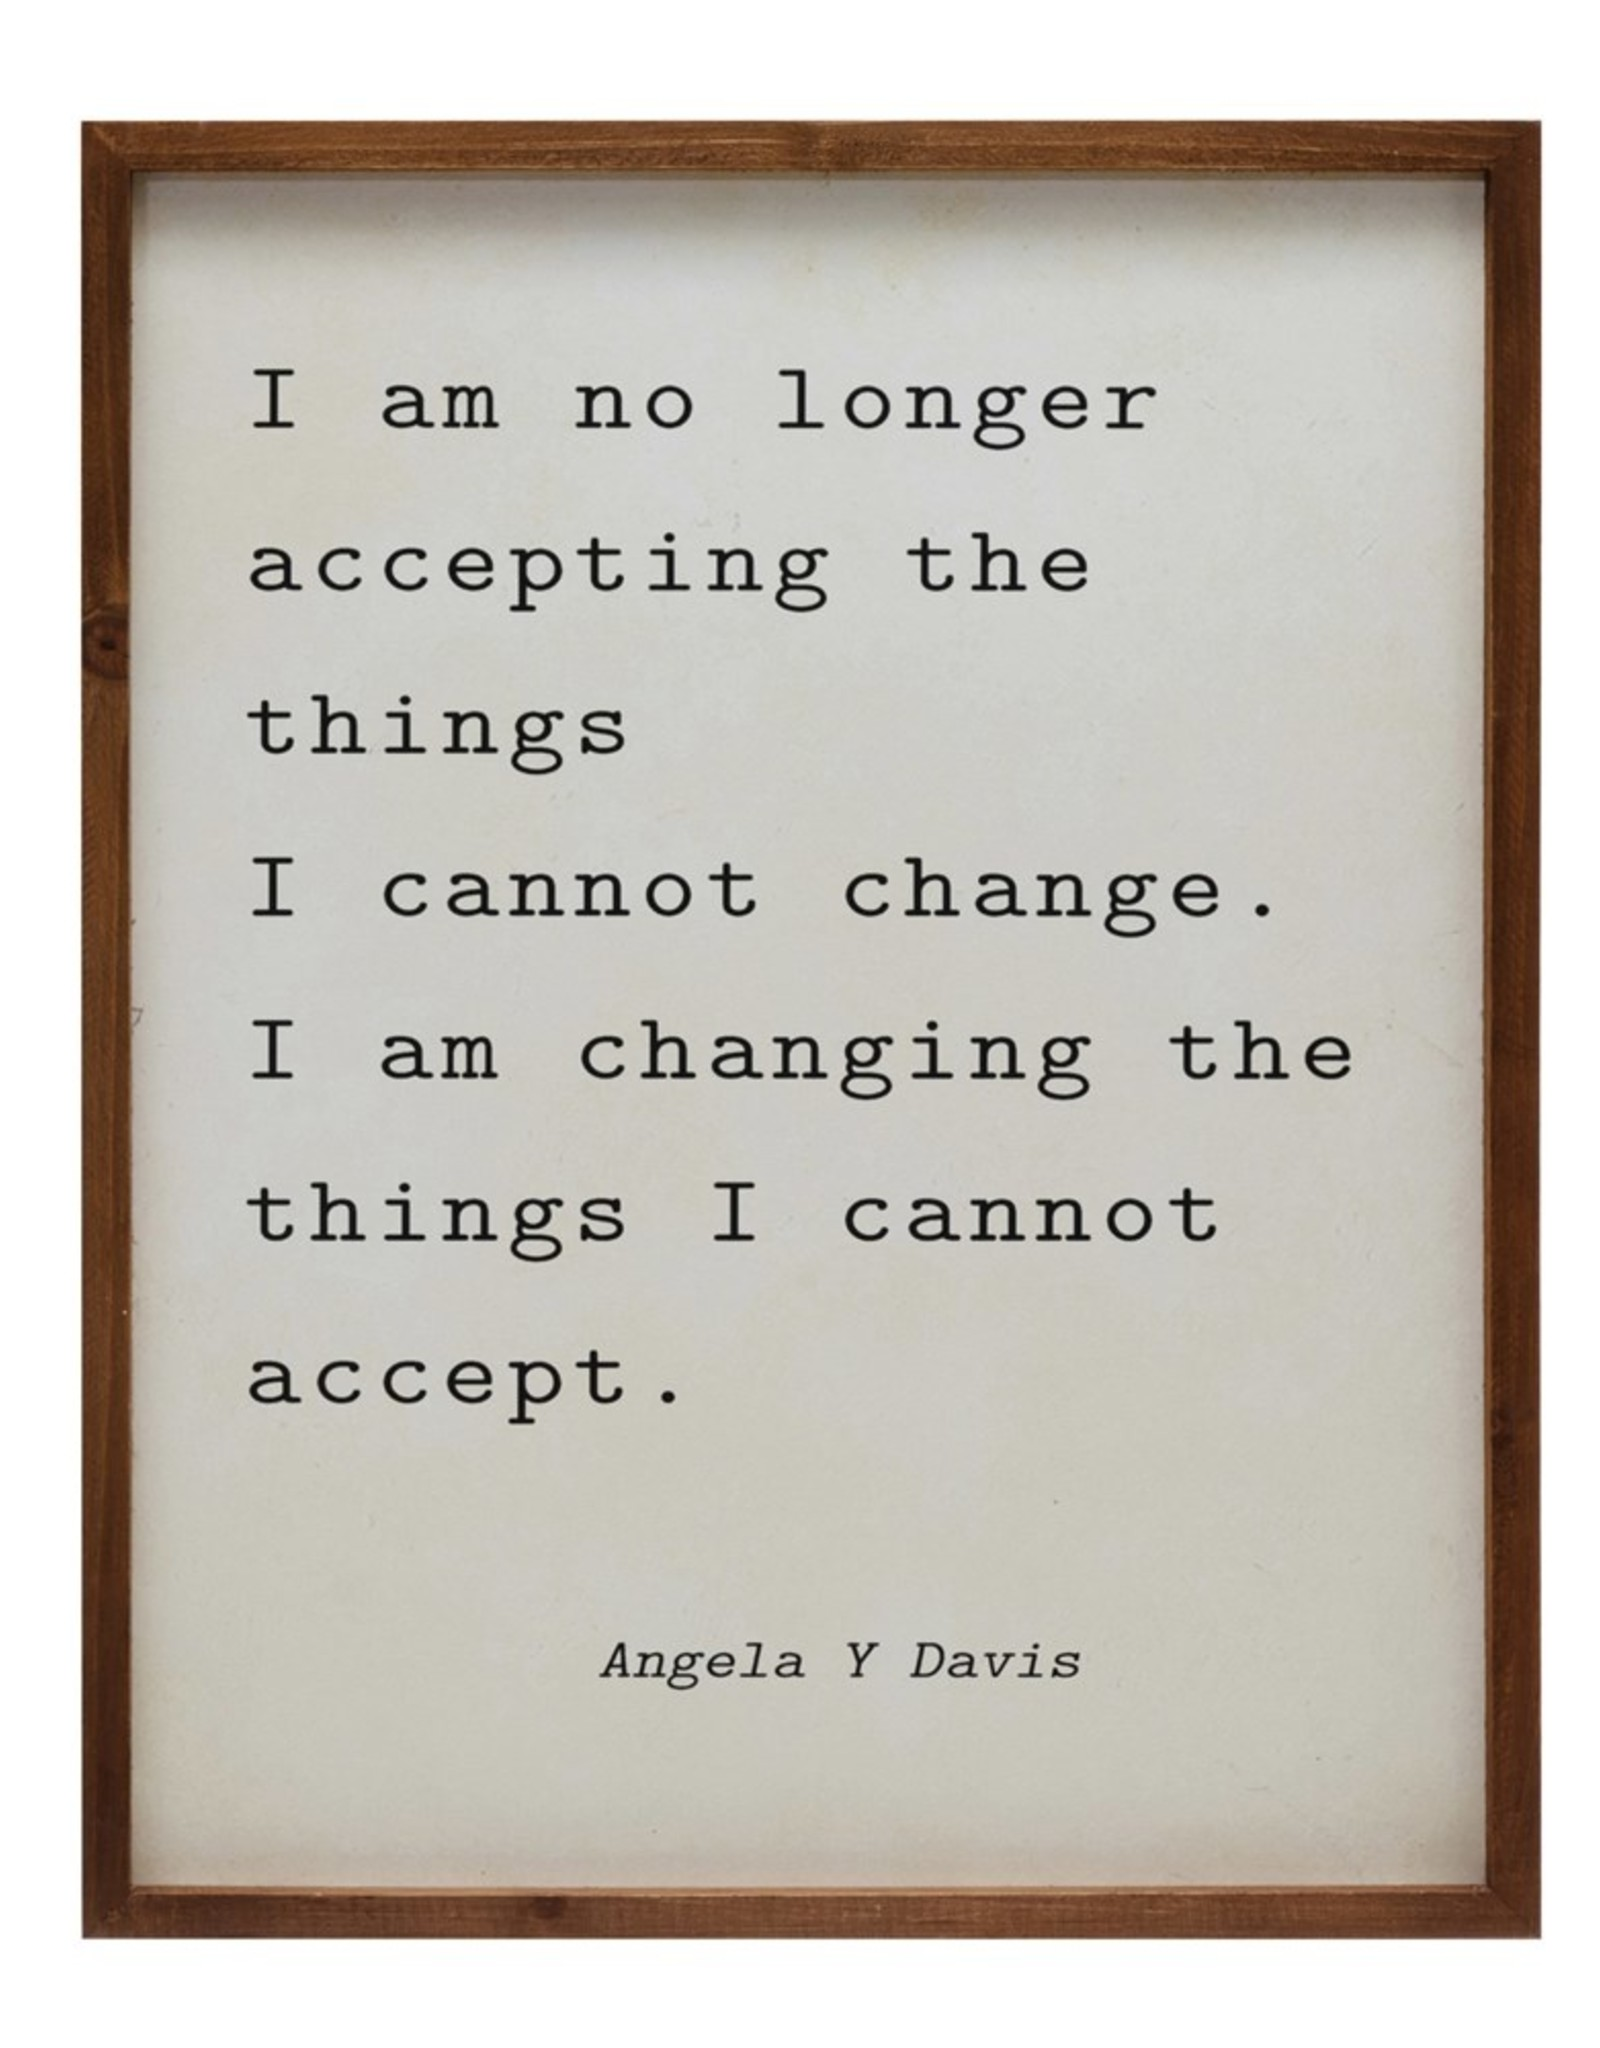 Wink I am no longer accepting the things I cannot change wall hanging